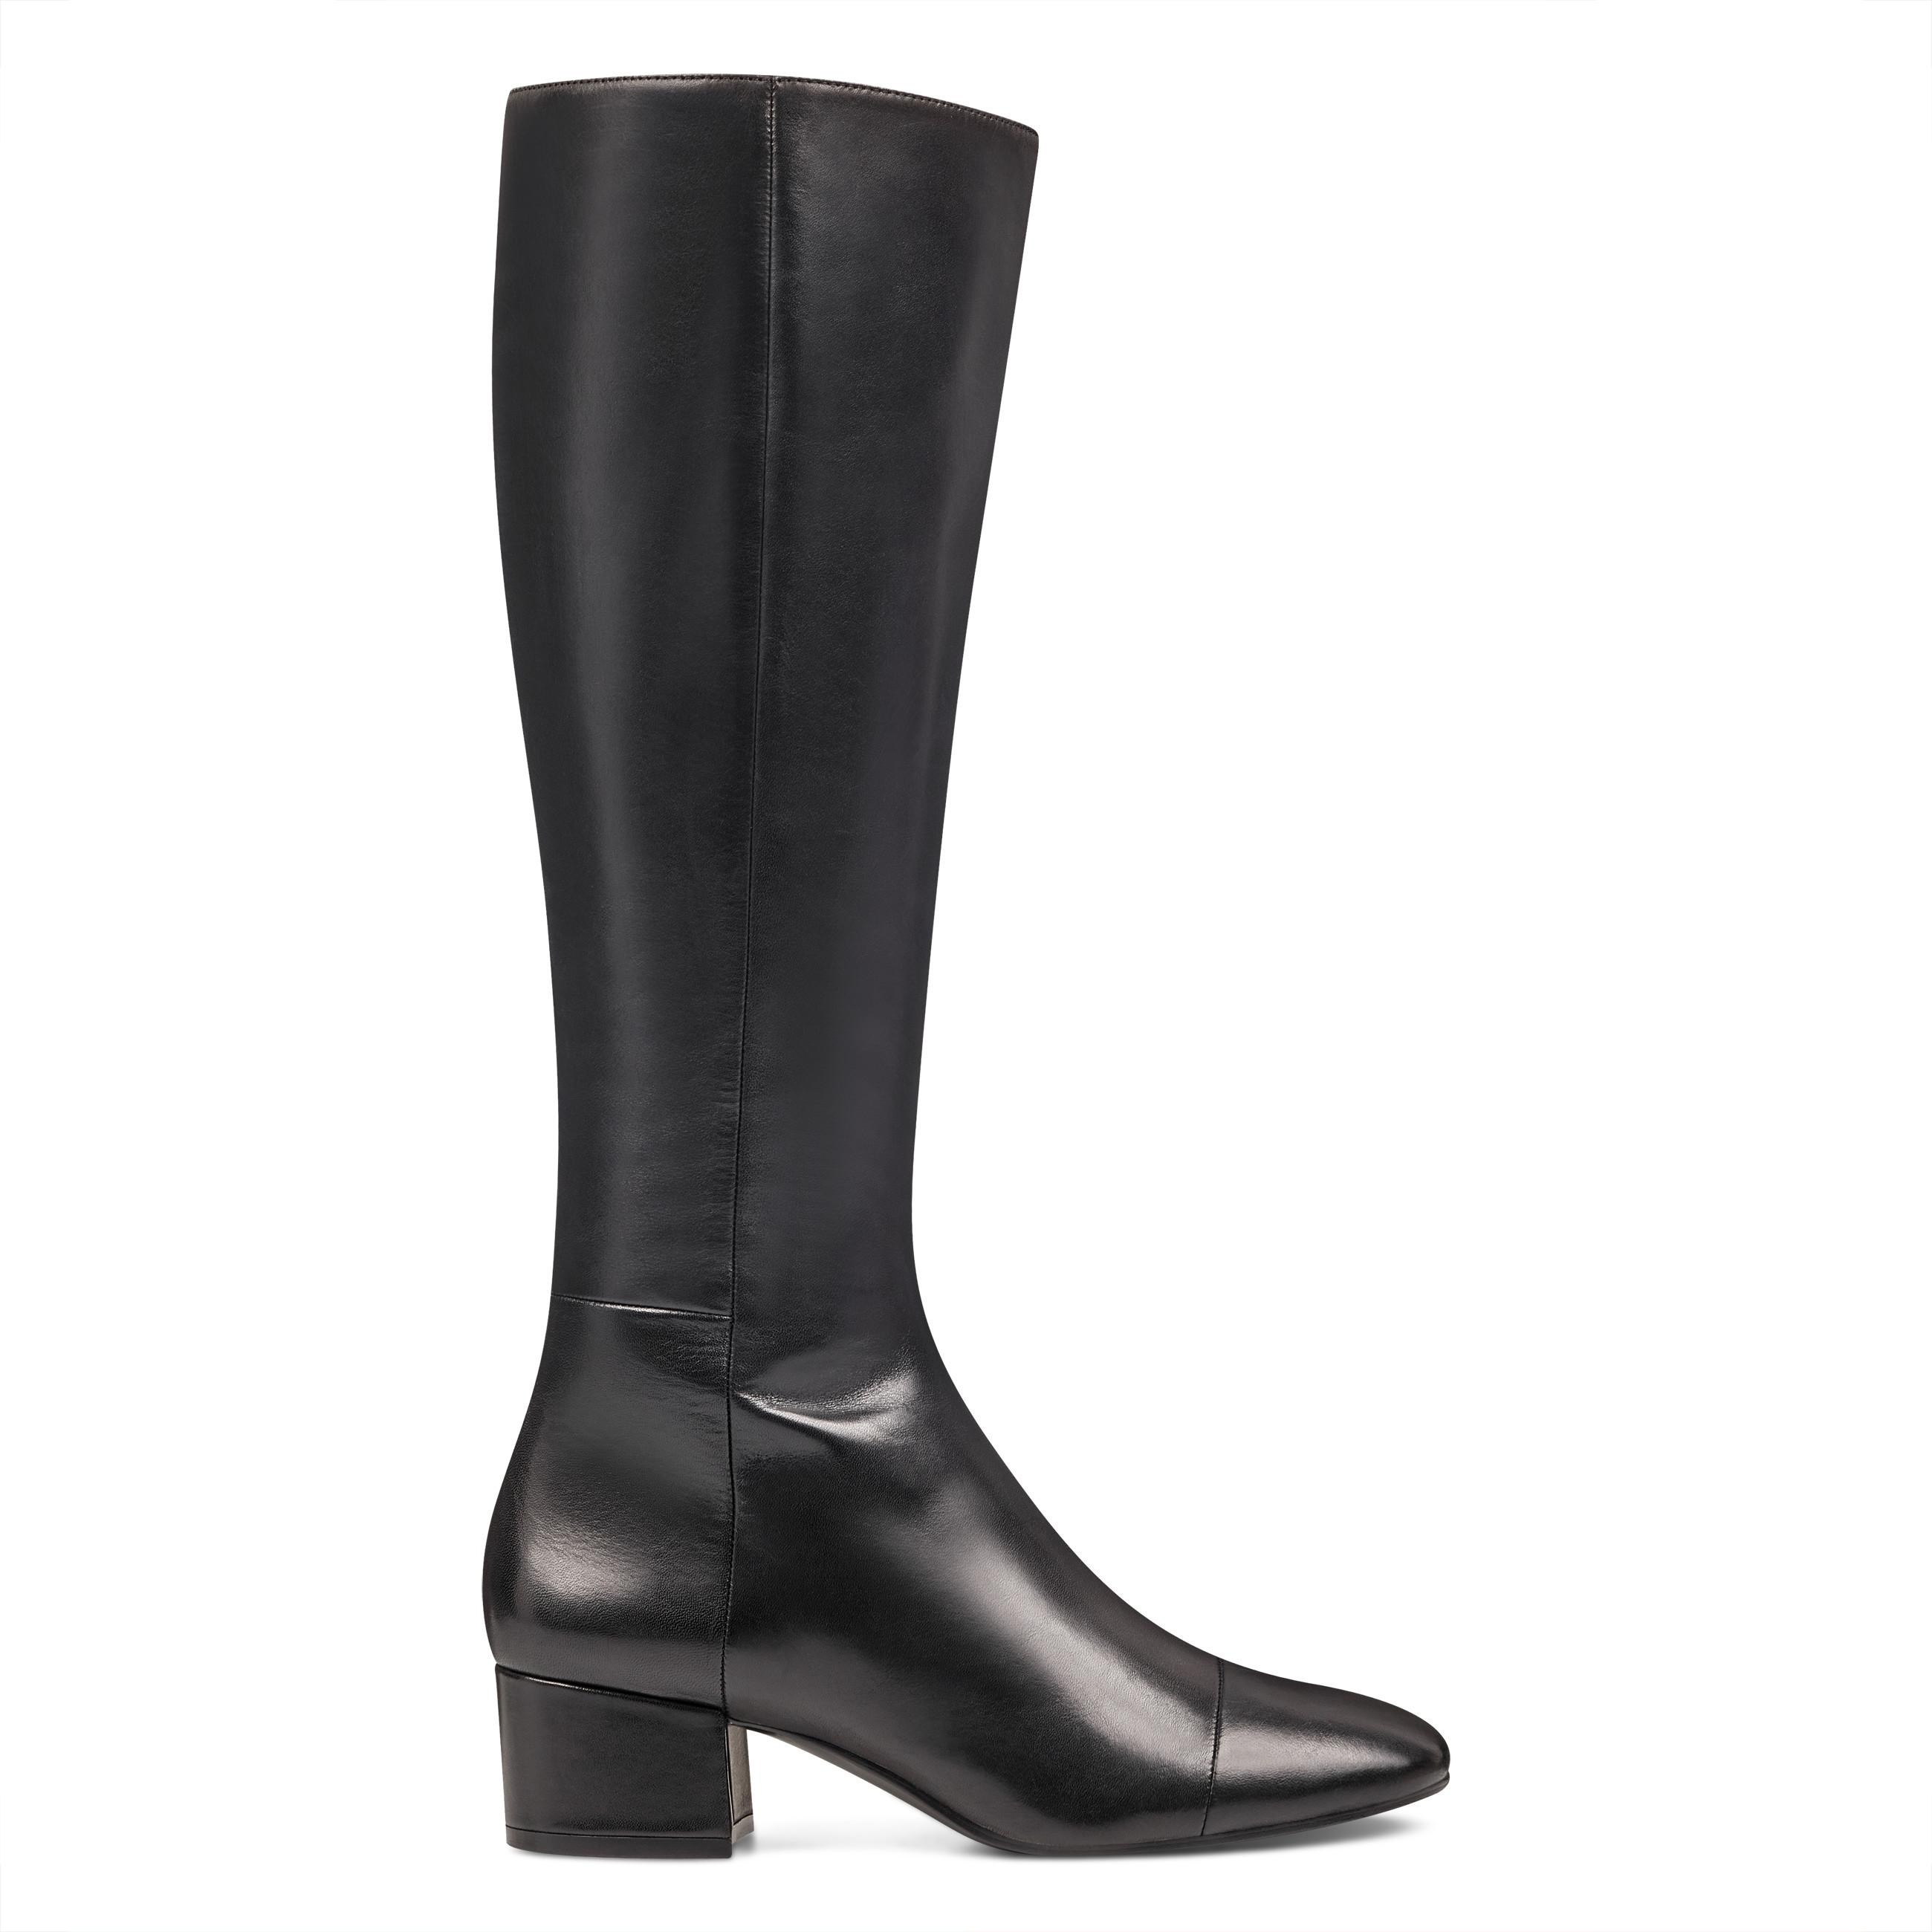 f648d771ee4e Lyst - Nine West Lestife Round Toe Boots in Black - Save 37%